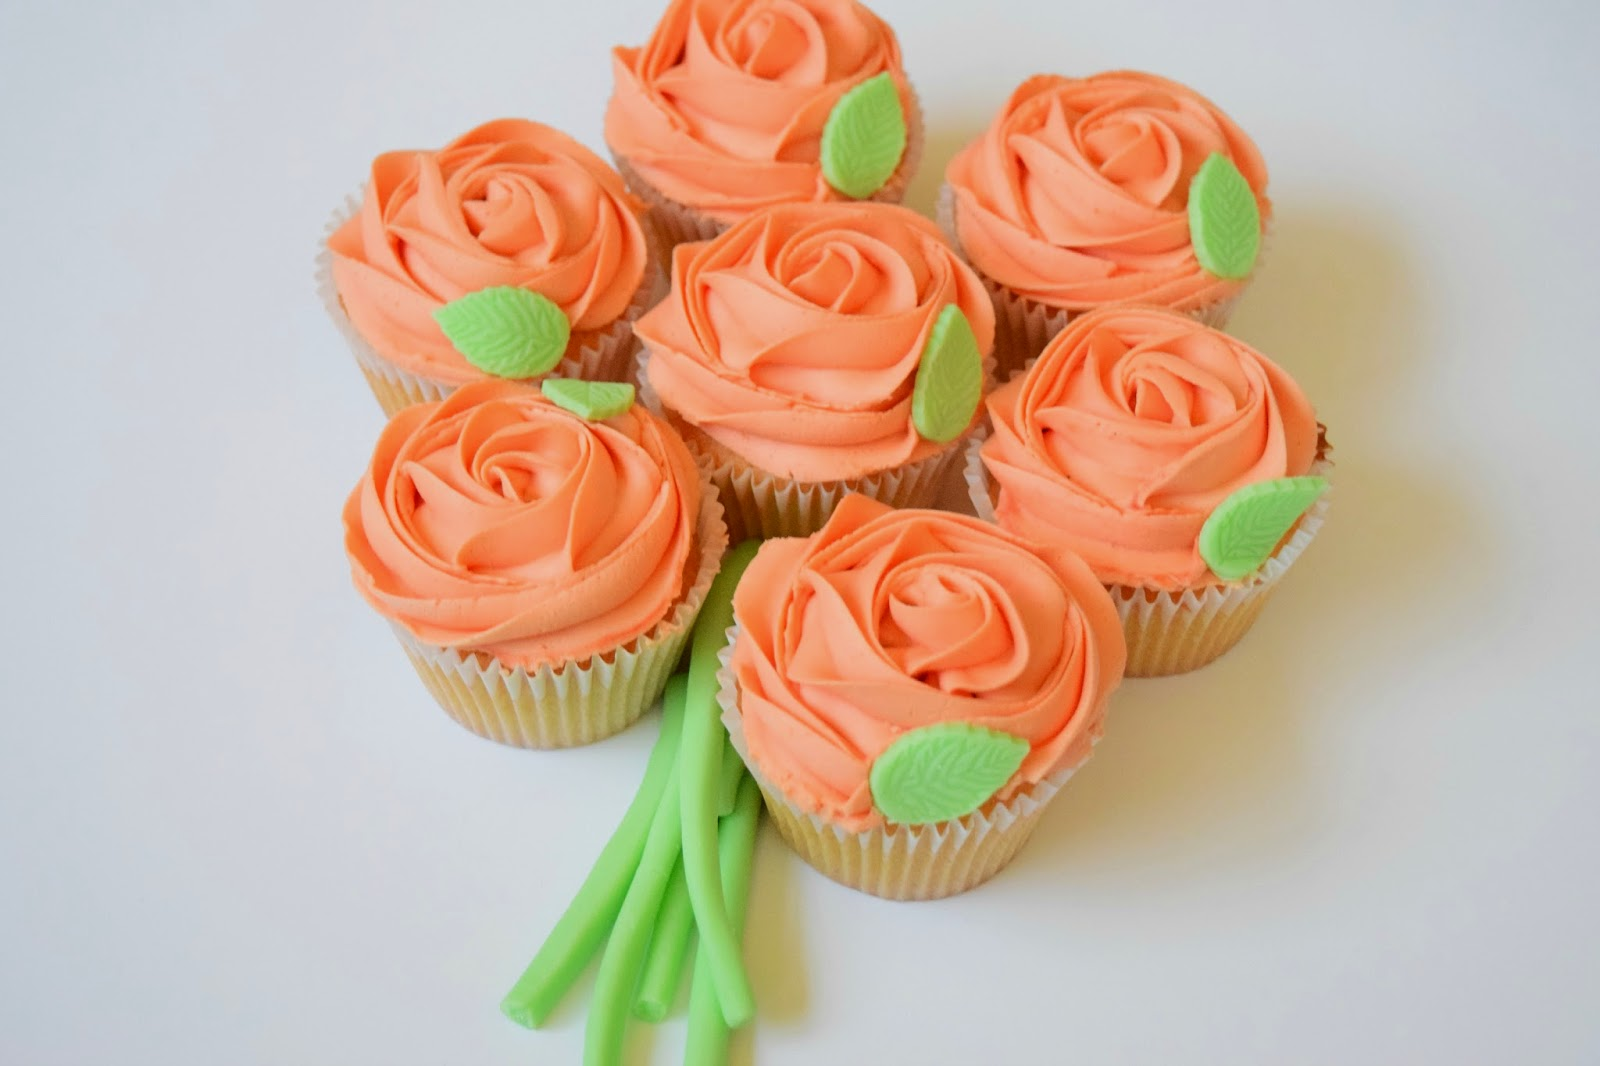 Cupcake, Bouquet, Mothers Day, Roses, Peach, Dairy Free, Cake